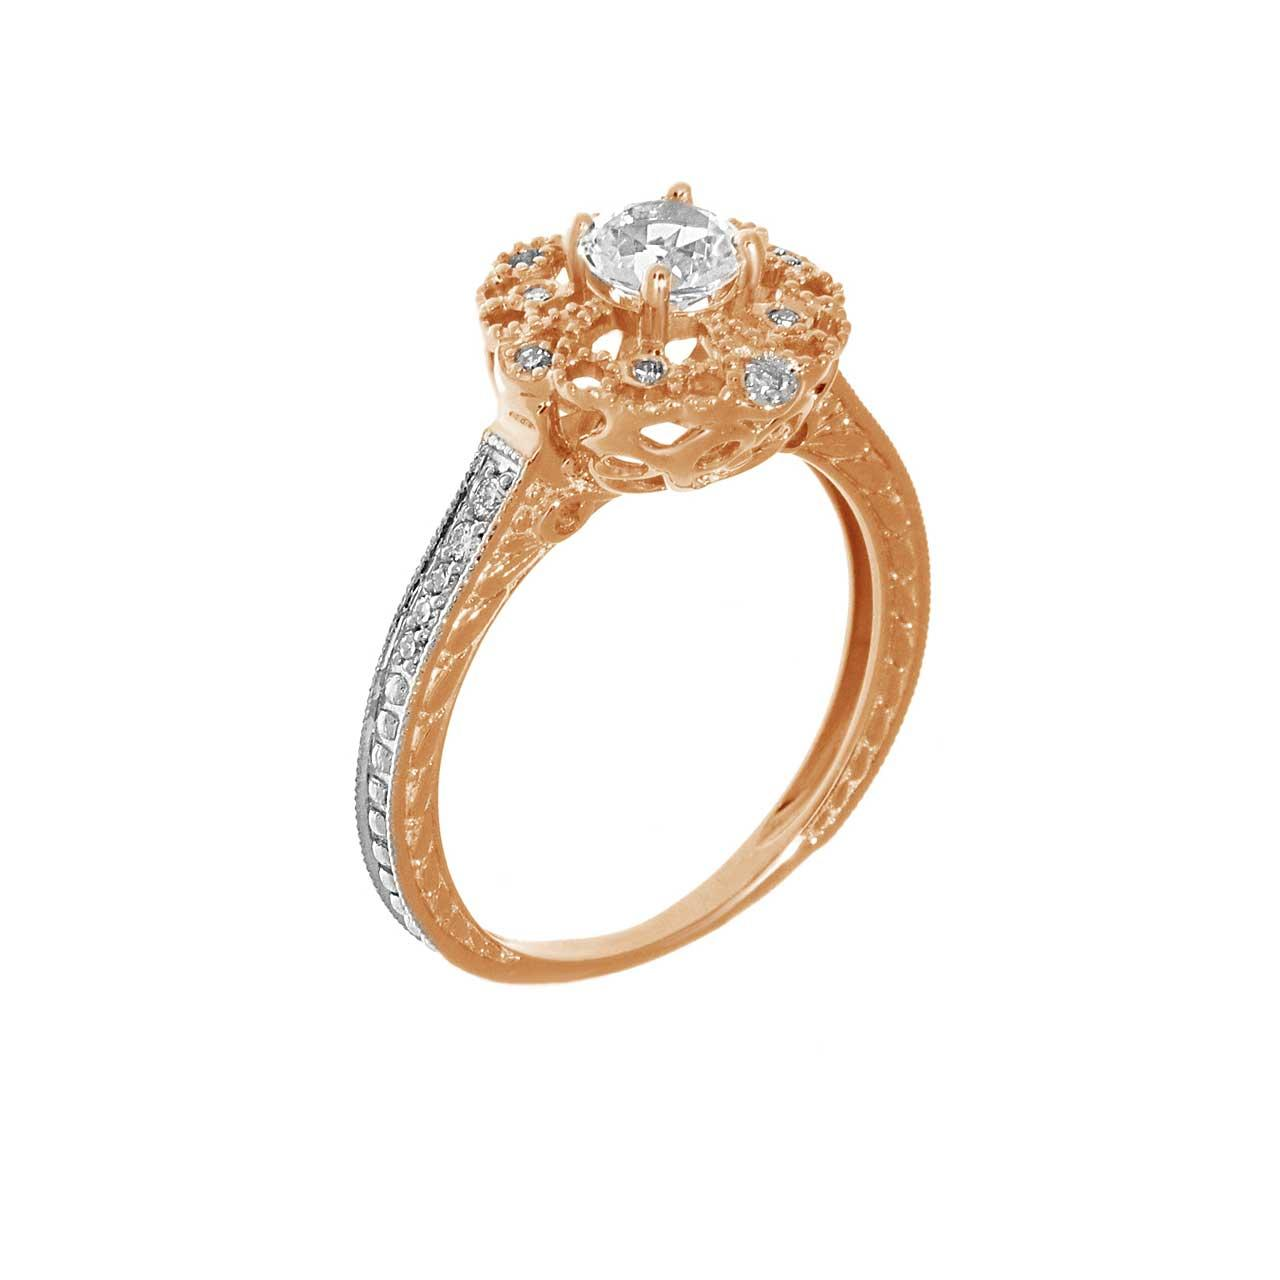 Diamond and topaz ring 1